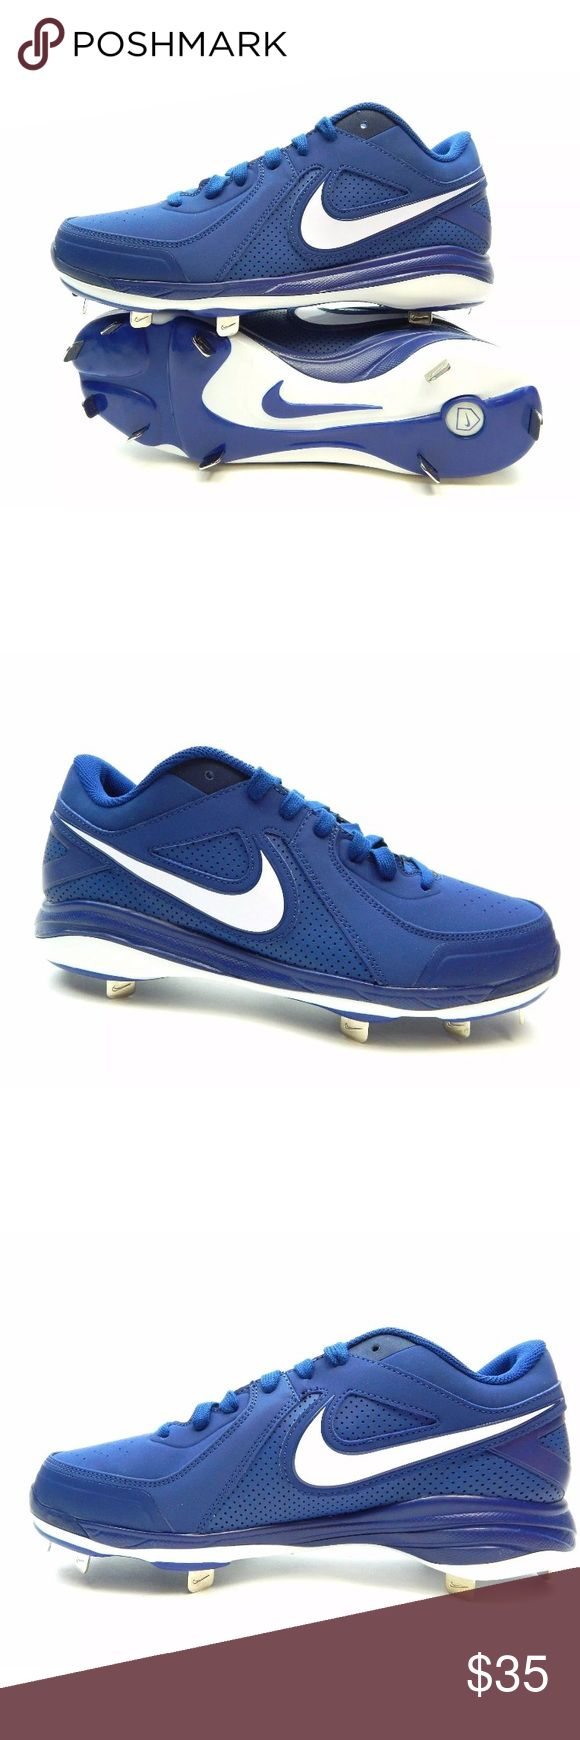 NEW Nike Air MVP Pro Baseball Blue Cleats Sz 16 NEW Nike Air MVP Pro Low Metal Baseball Cleats Men's Size 16 [524641-410] Blue.   Has a small defect. See last pic. Nike Shoes Sneakers